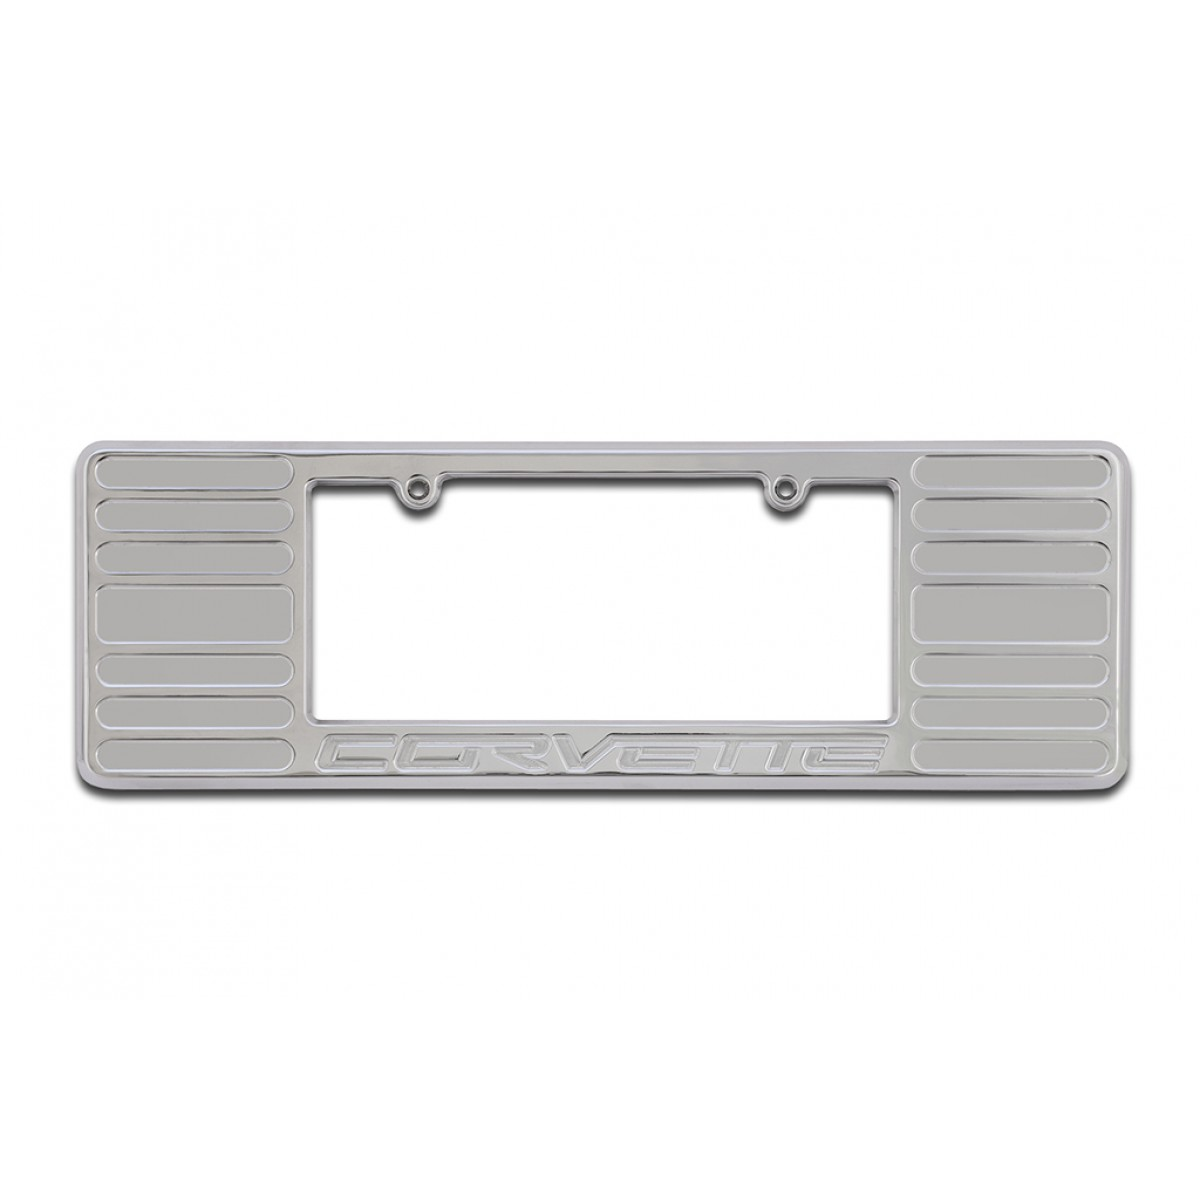 2005 2013 Chevy Corvette License Plate Frame